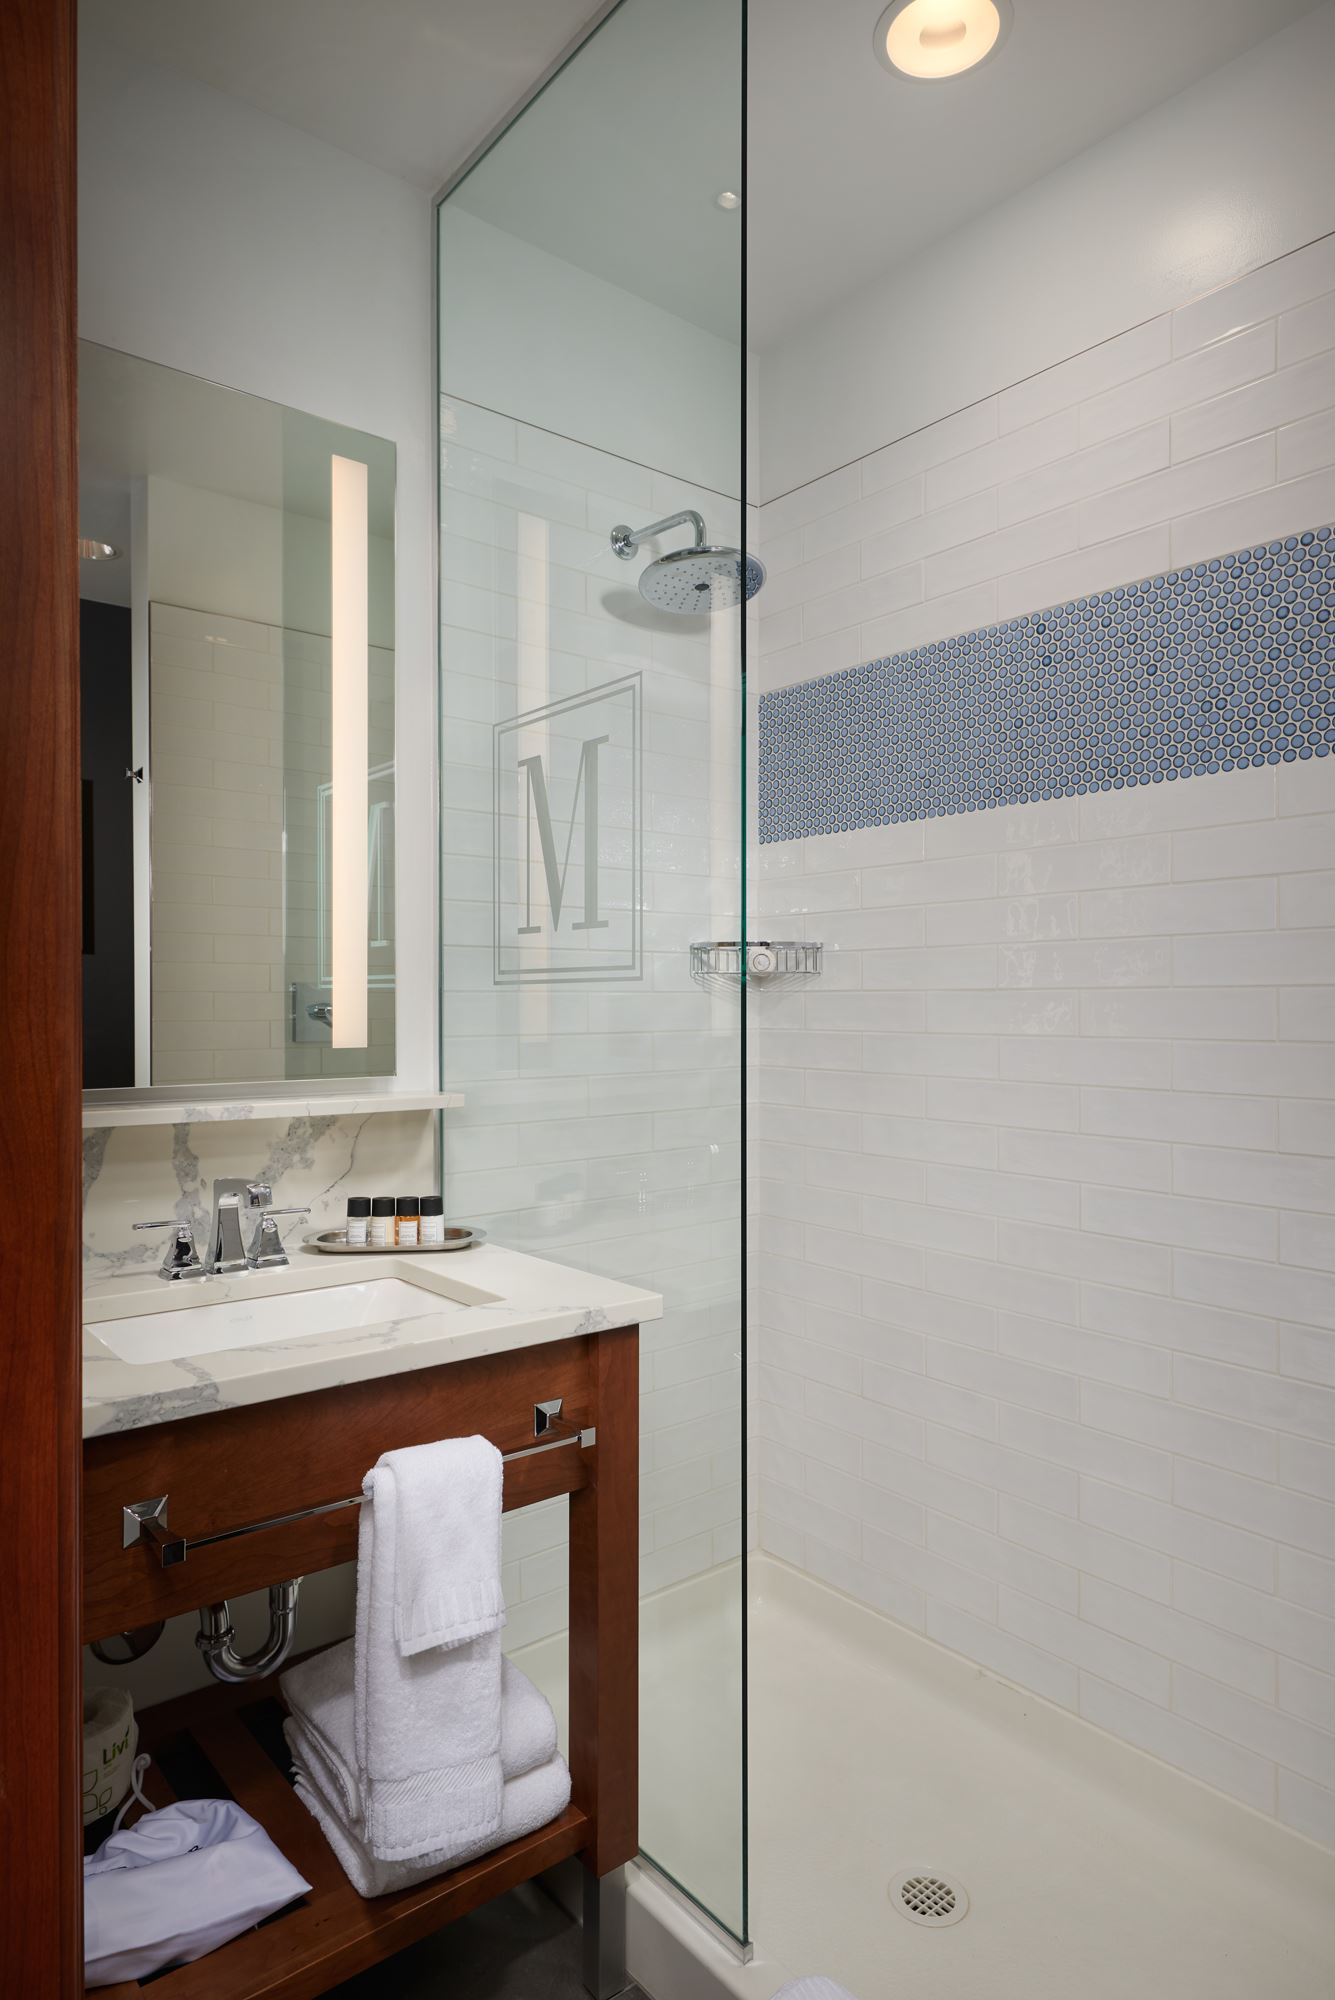 The Merrill Hotel & Conference Center - presidential suite bathroom